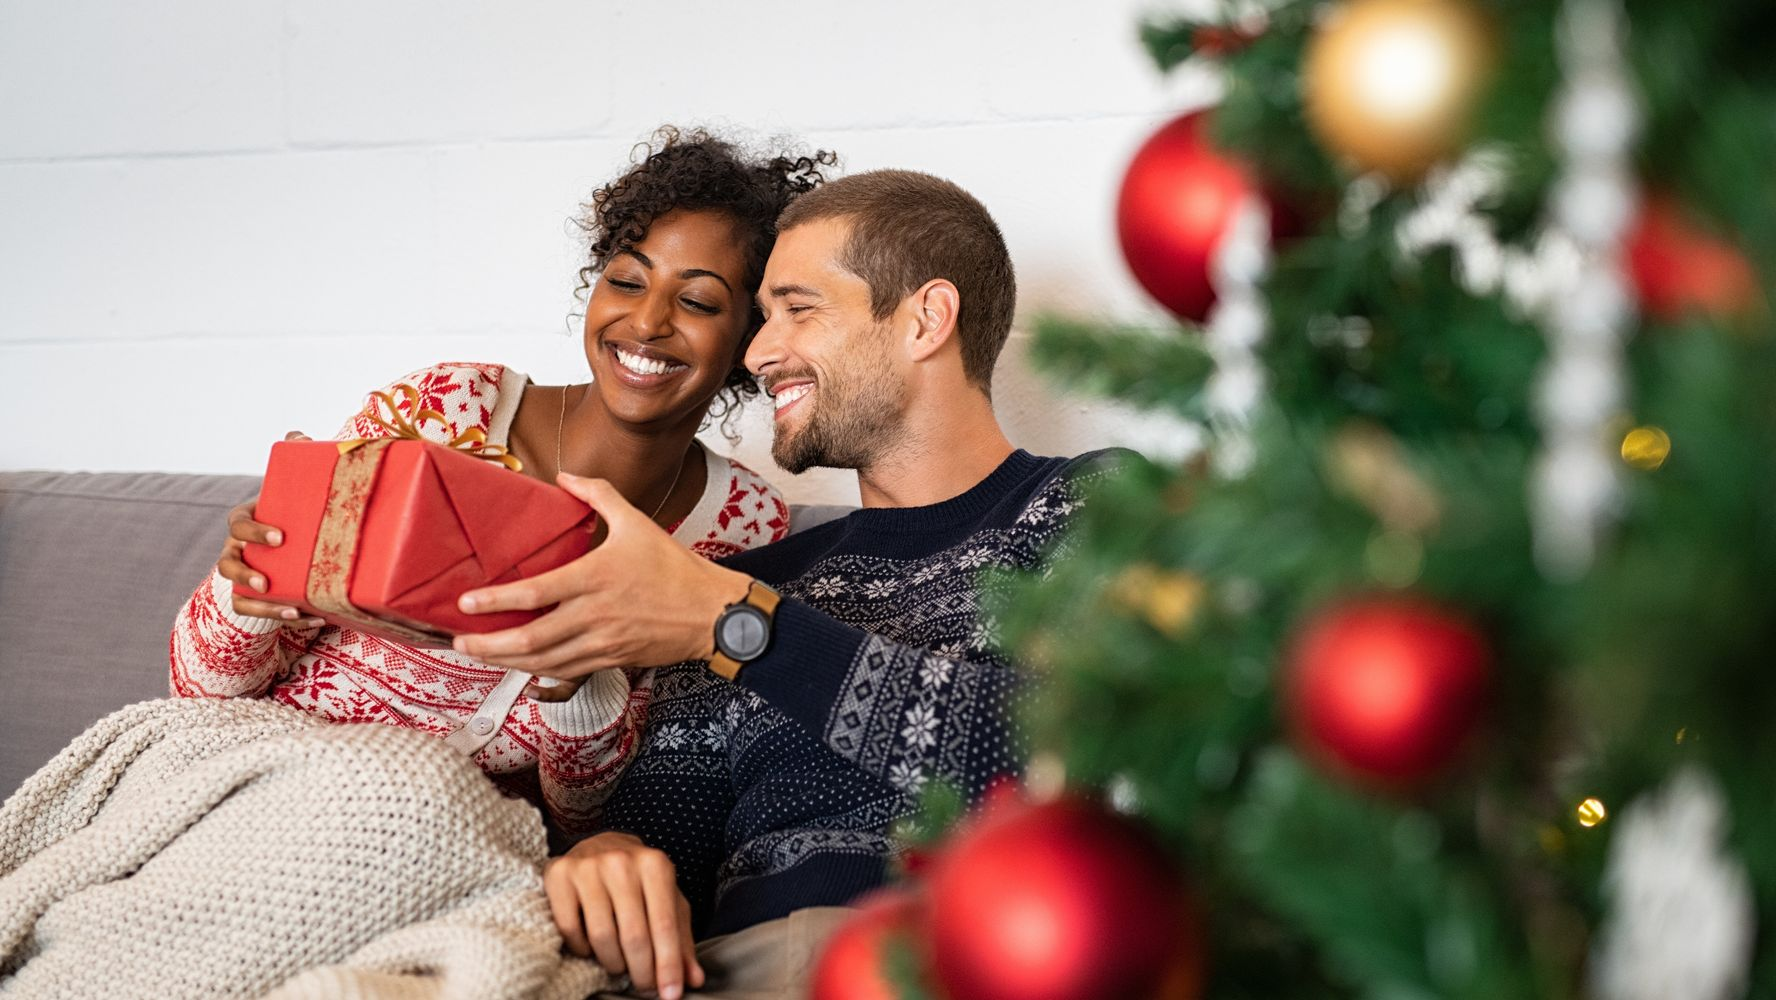 Christmas Gifts Under $100 For Your Chosen Family